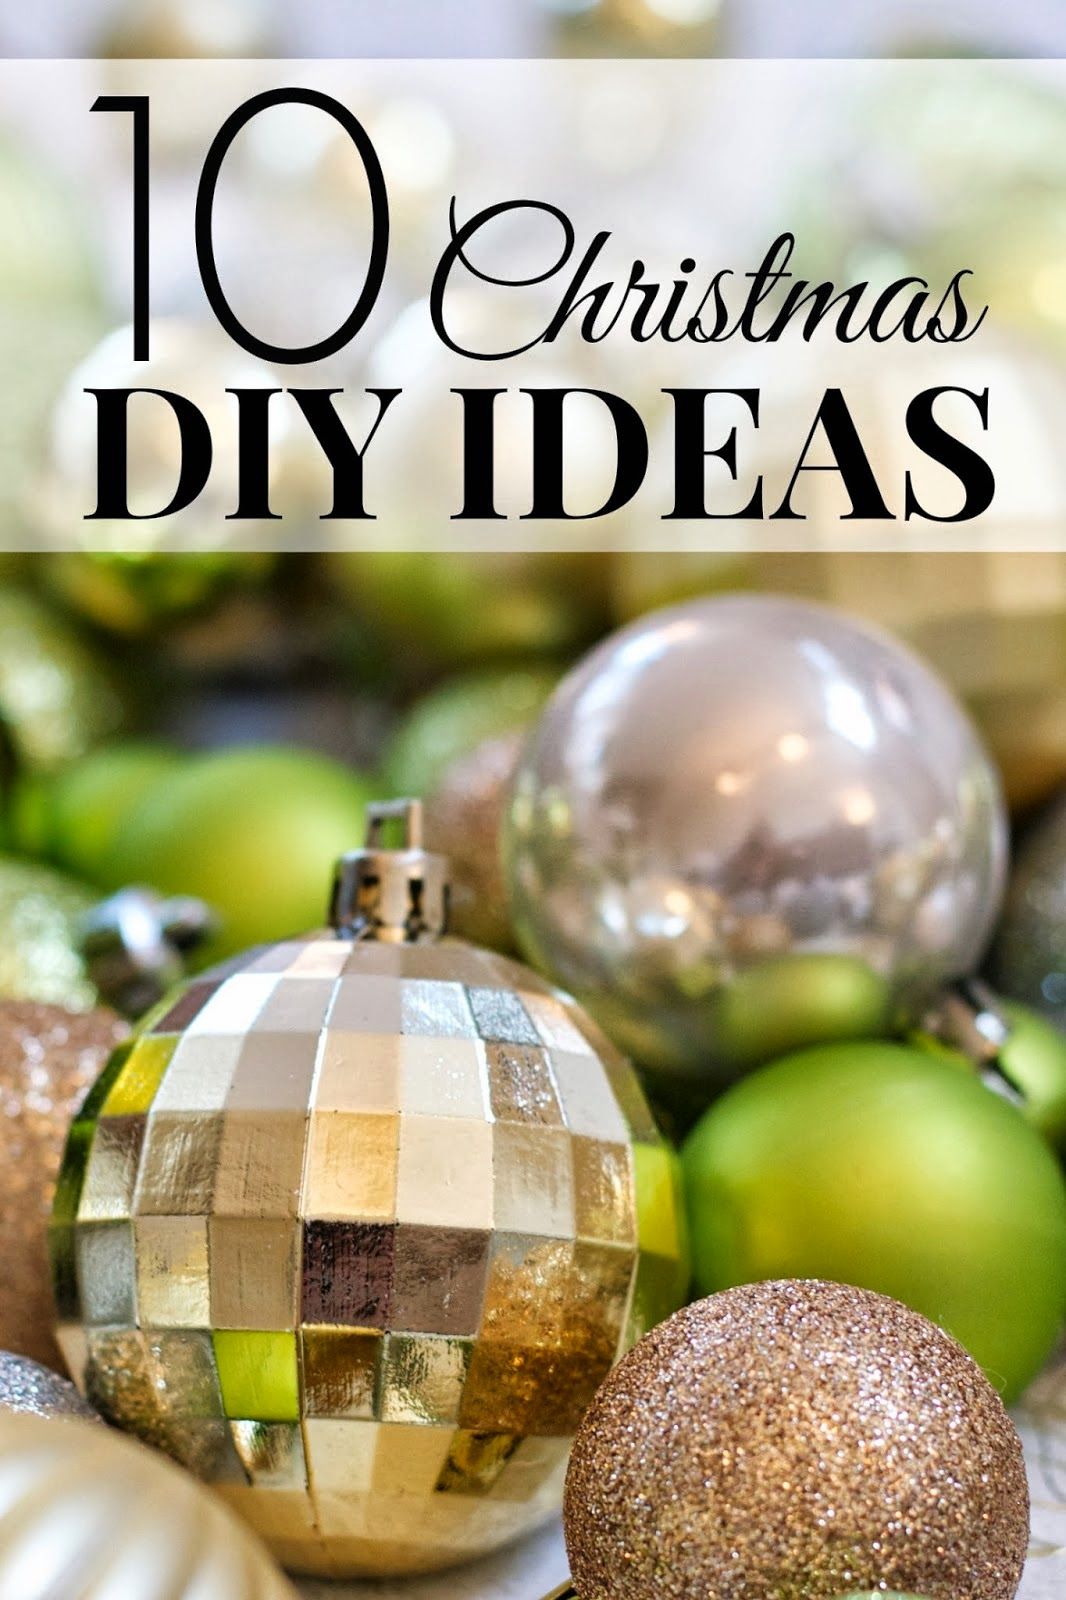 10 Christmas DIY Ideas